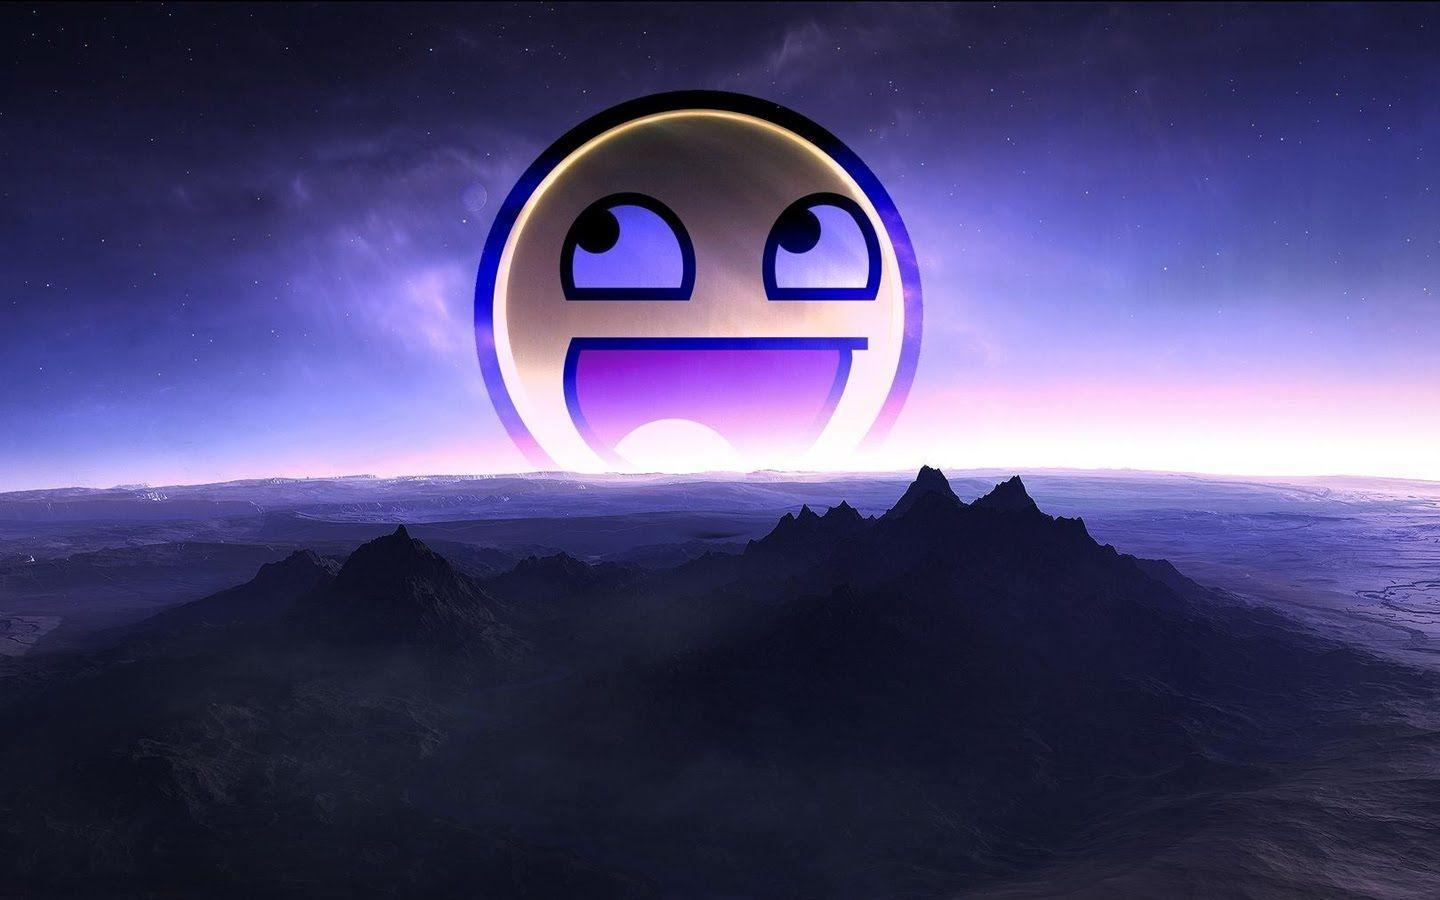 Awesome Smiley Face Wallpapers 1440x900